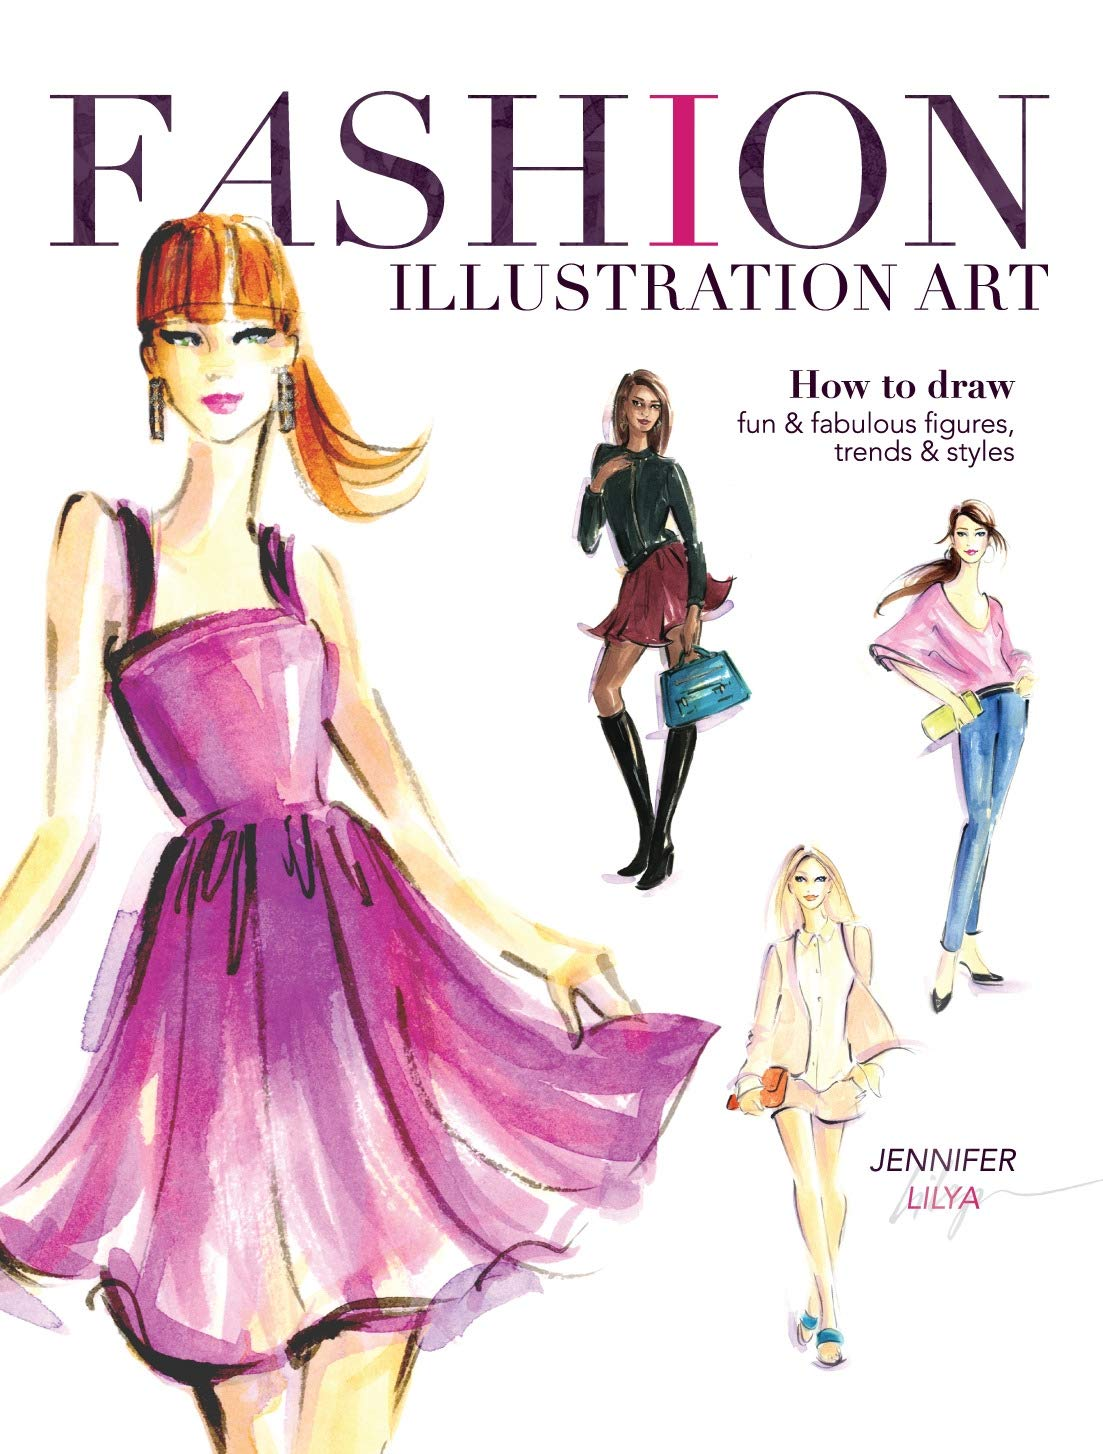 Fashion Illustration Art How To Draw Fun Fabulous Figures Trends And Styles Lilya Jennifer 9781440335433 Amazon Com Books